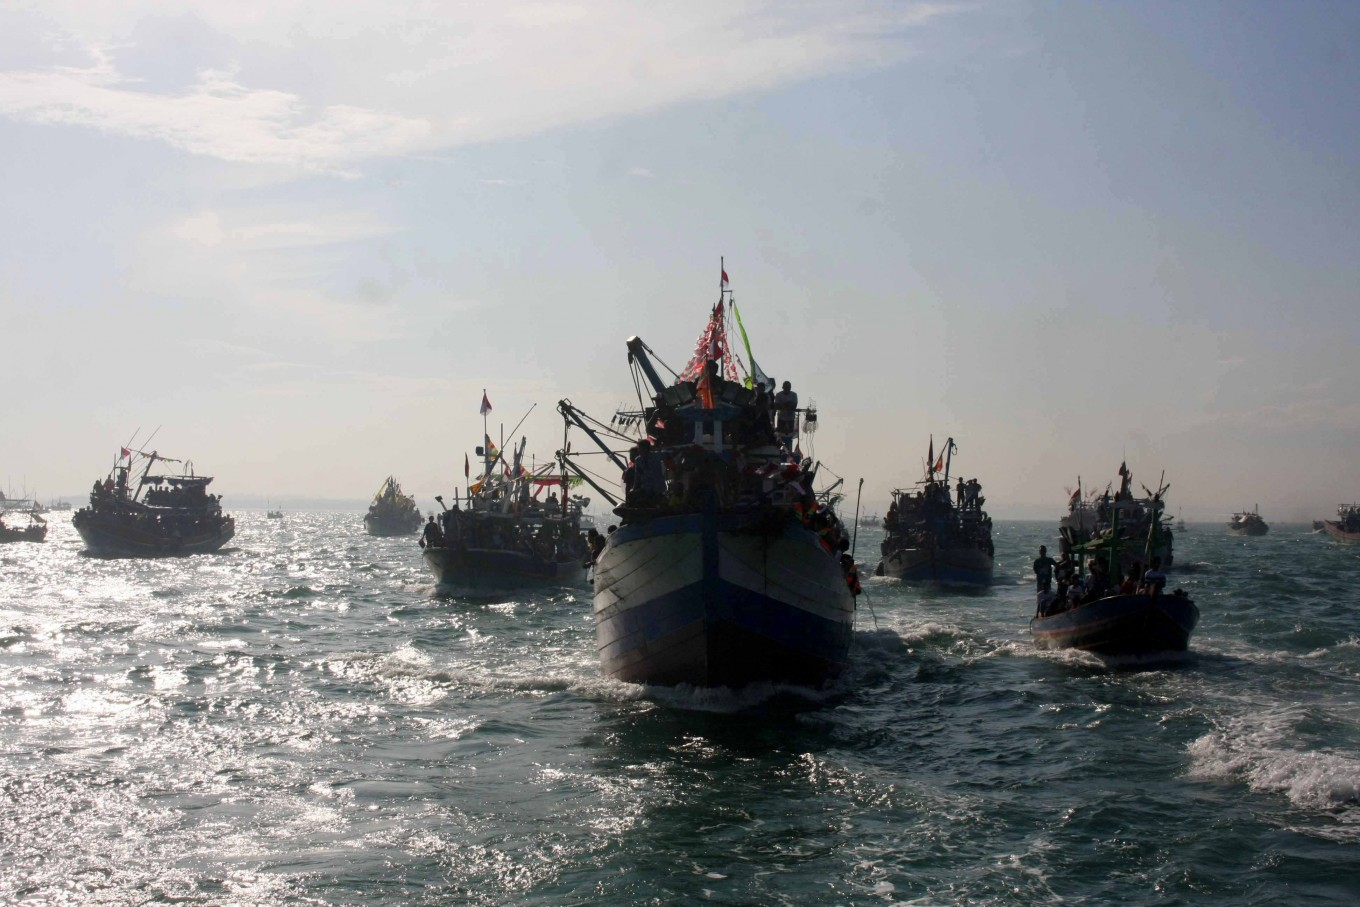 Locals on board dozens of boats join the Lomban Festival in Jepara Bay, Central Java, on July 2. JP/Maksum Nur Fauzan